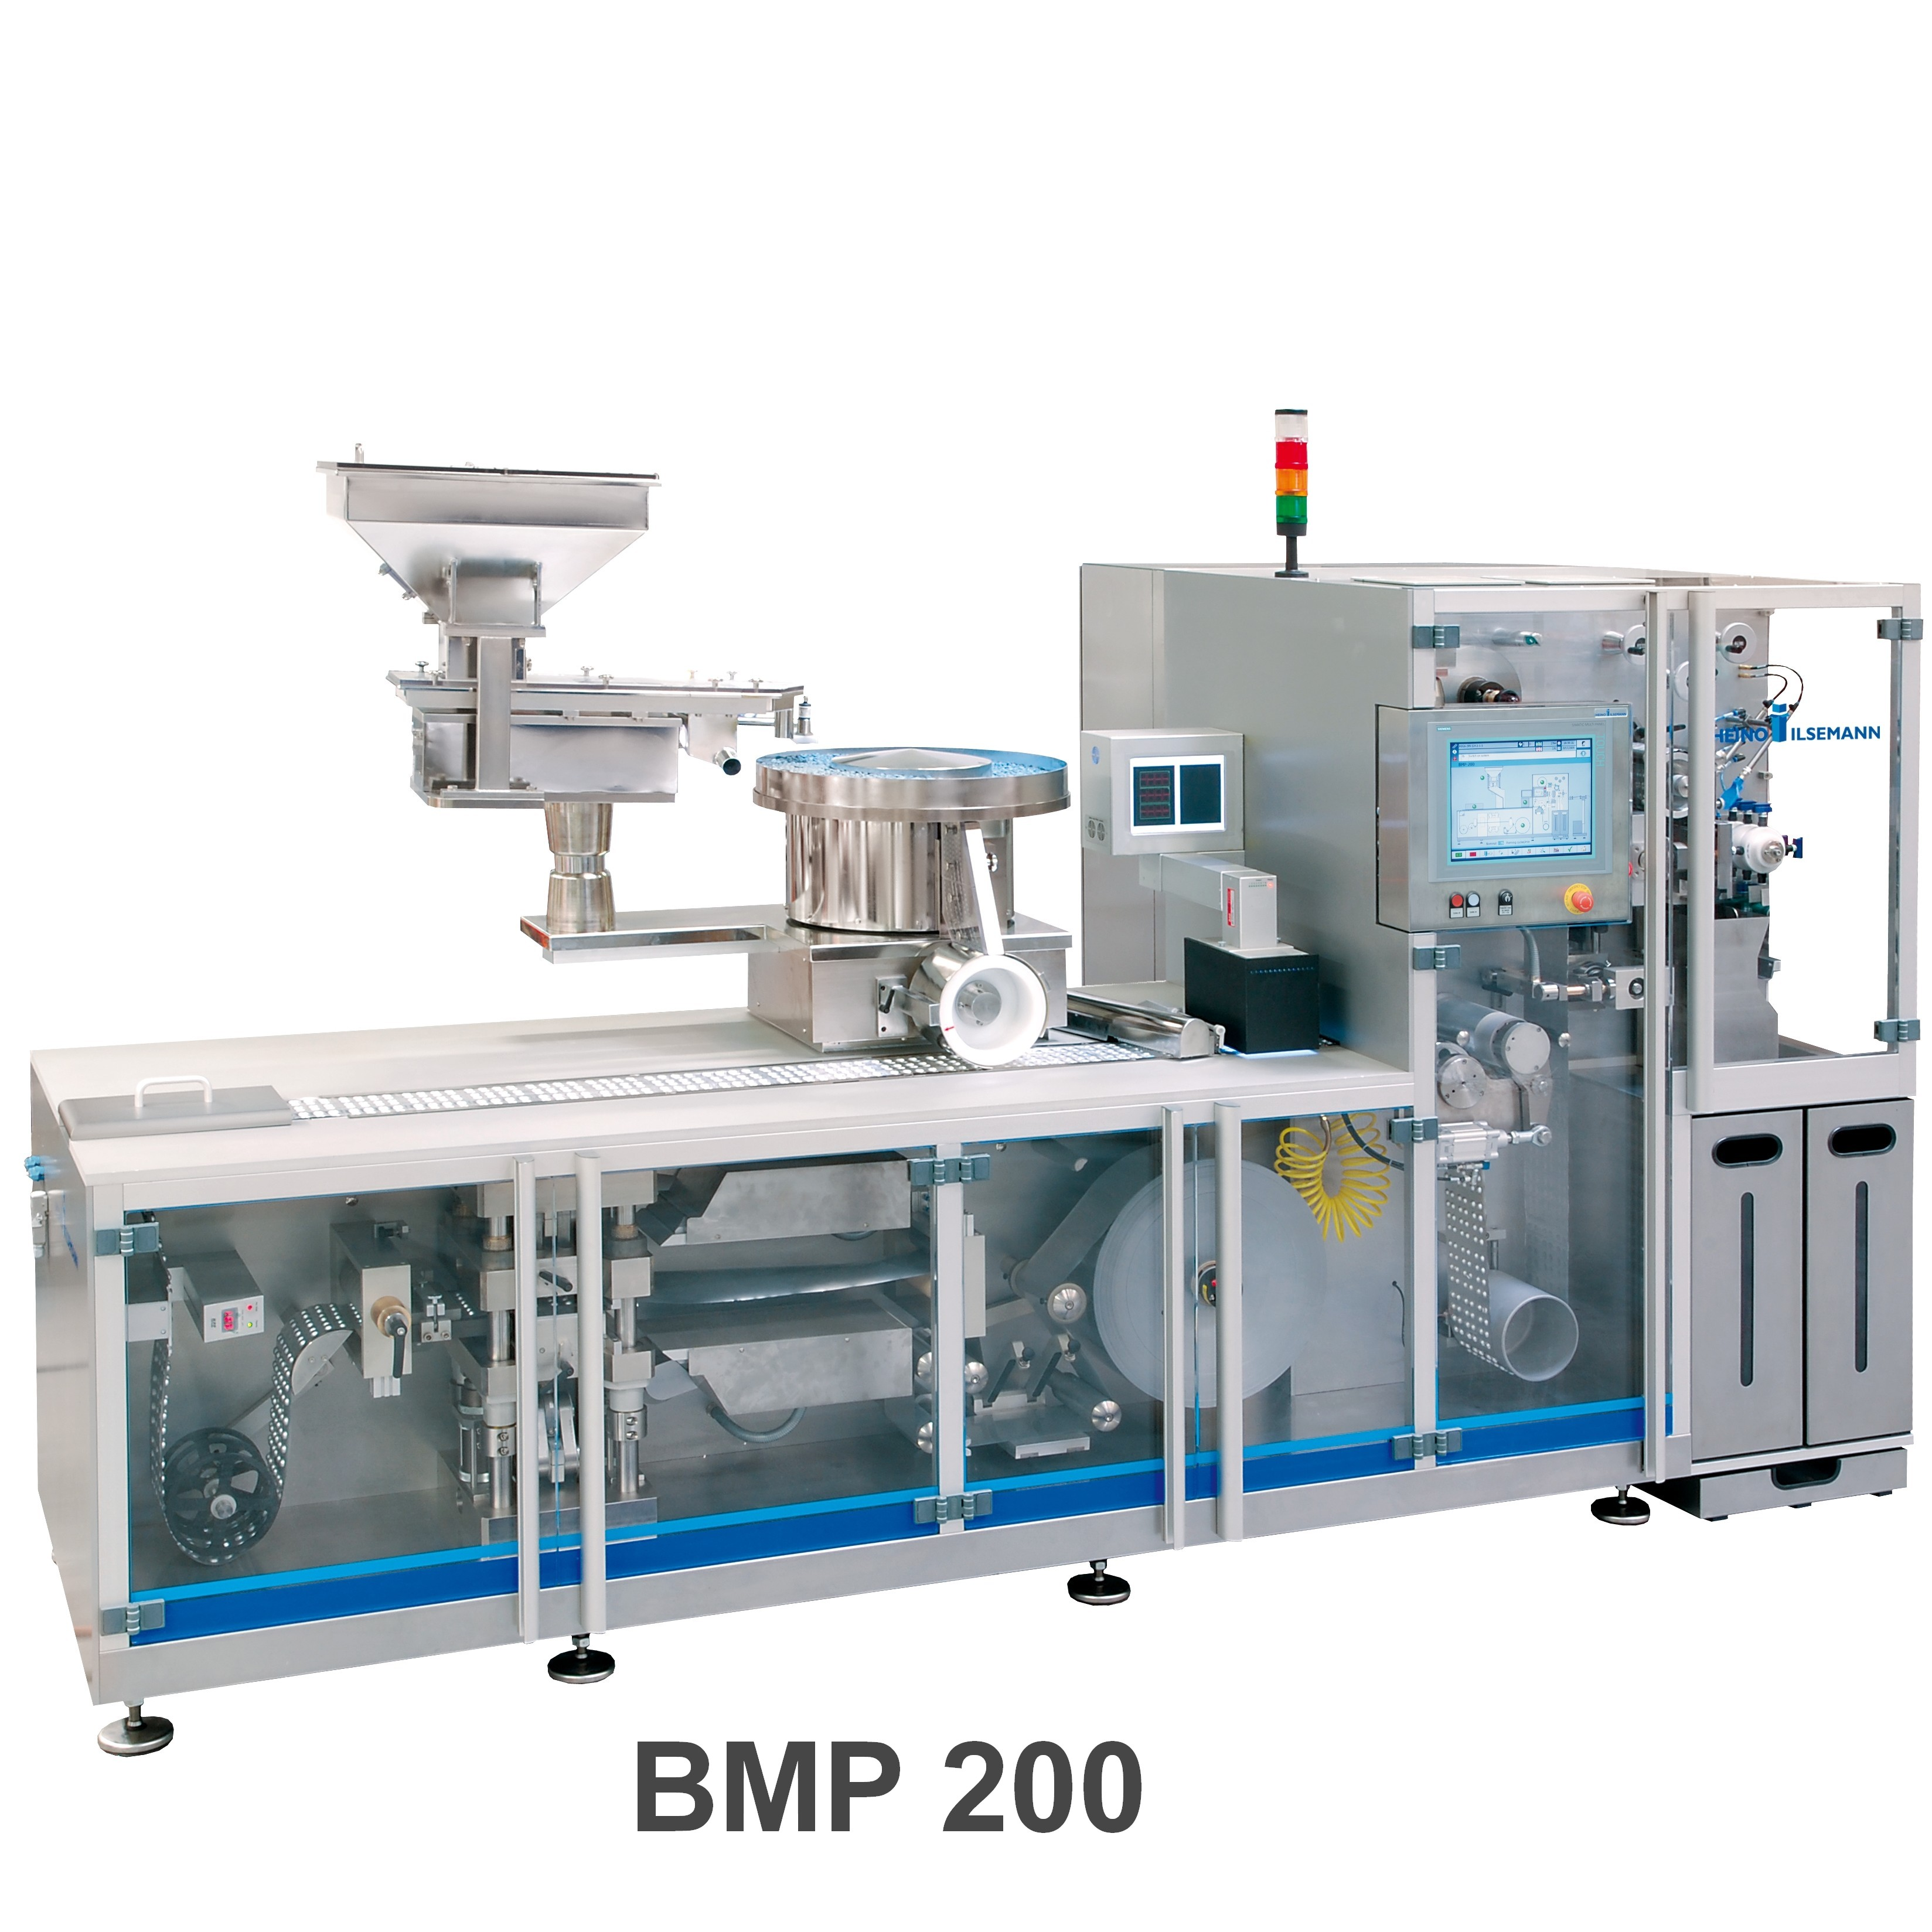 Blistermachine type BMP 200